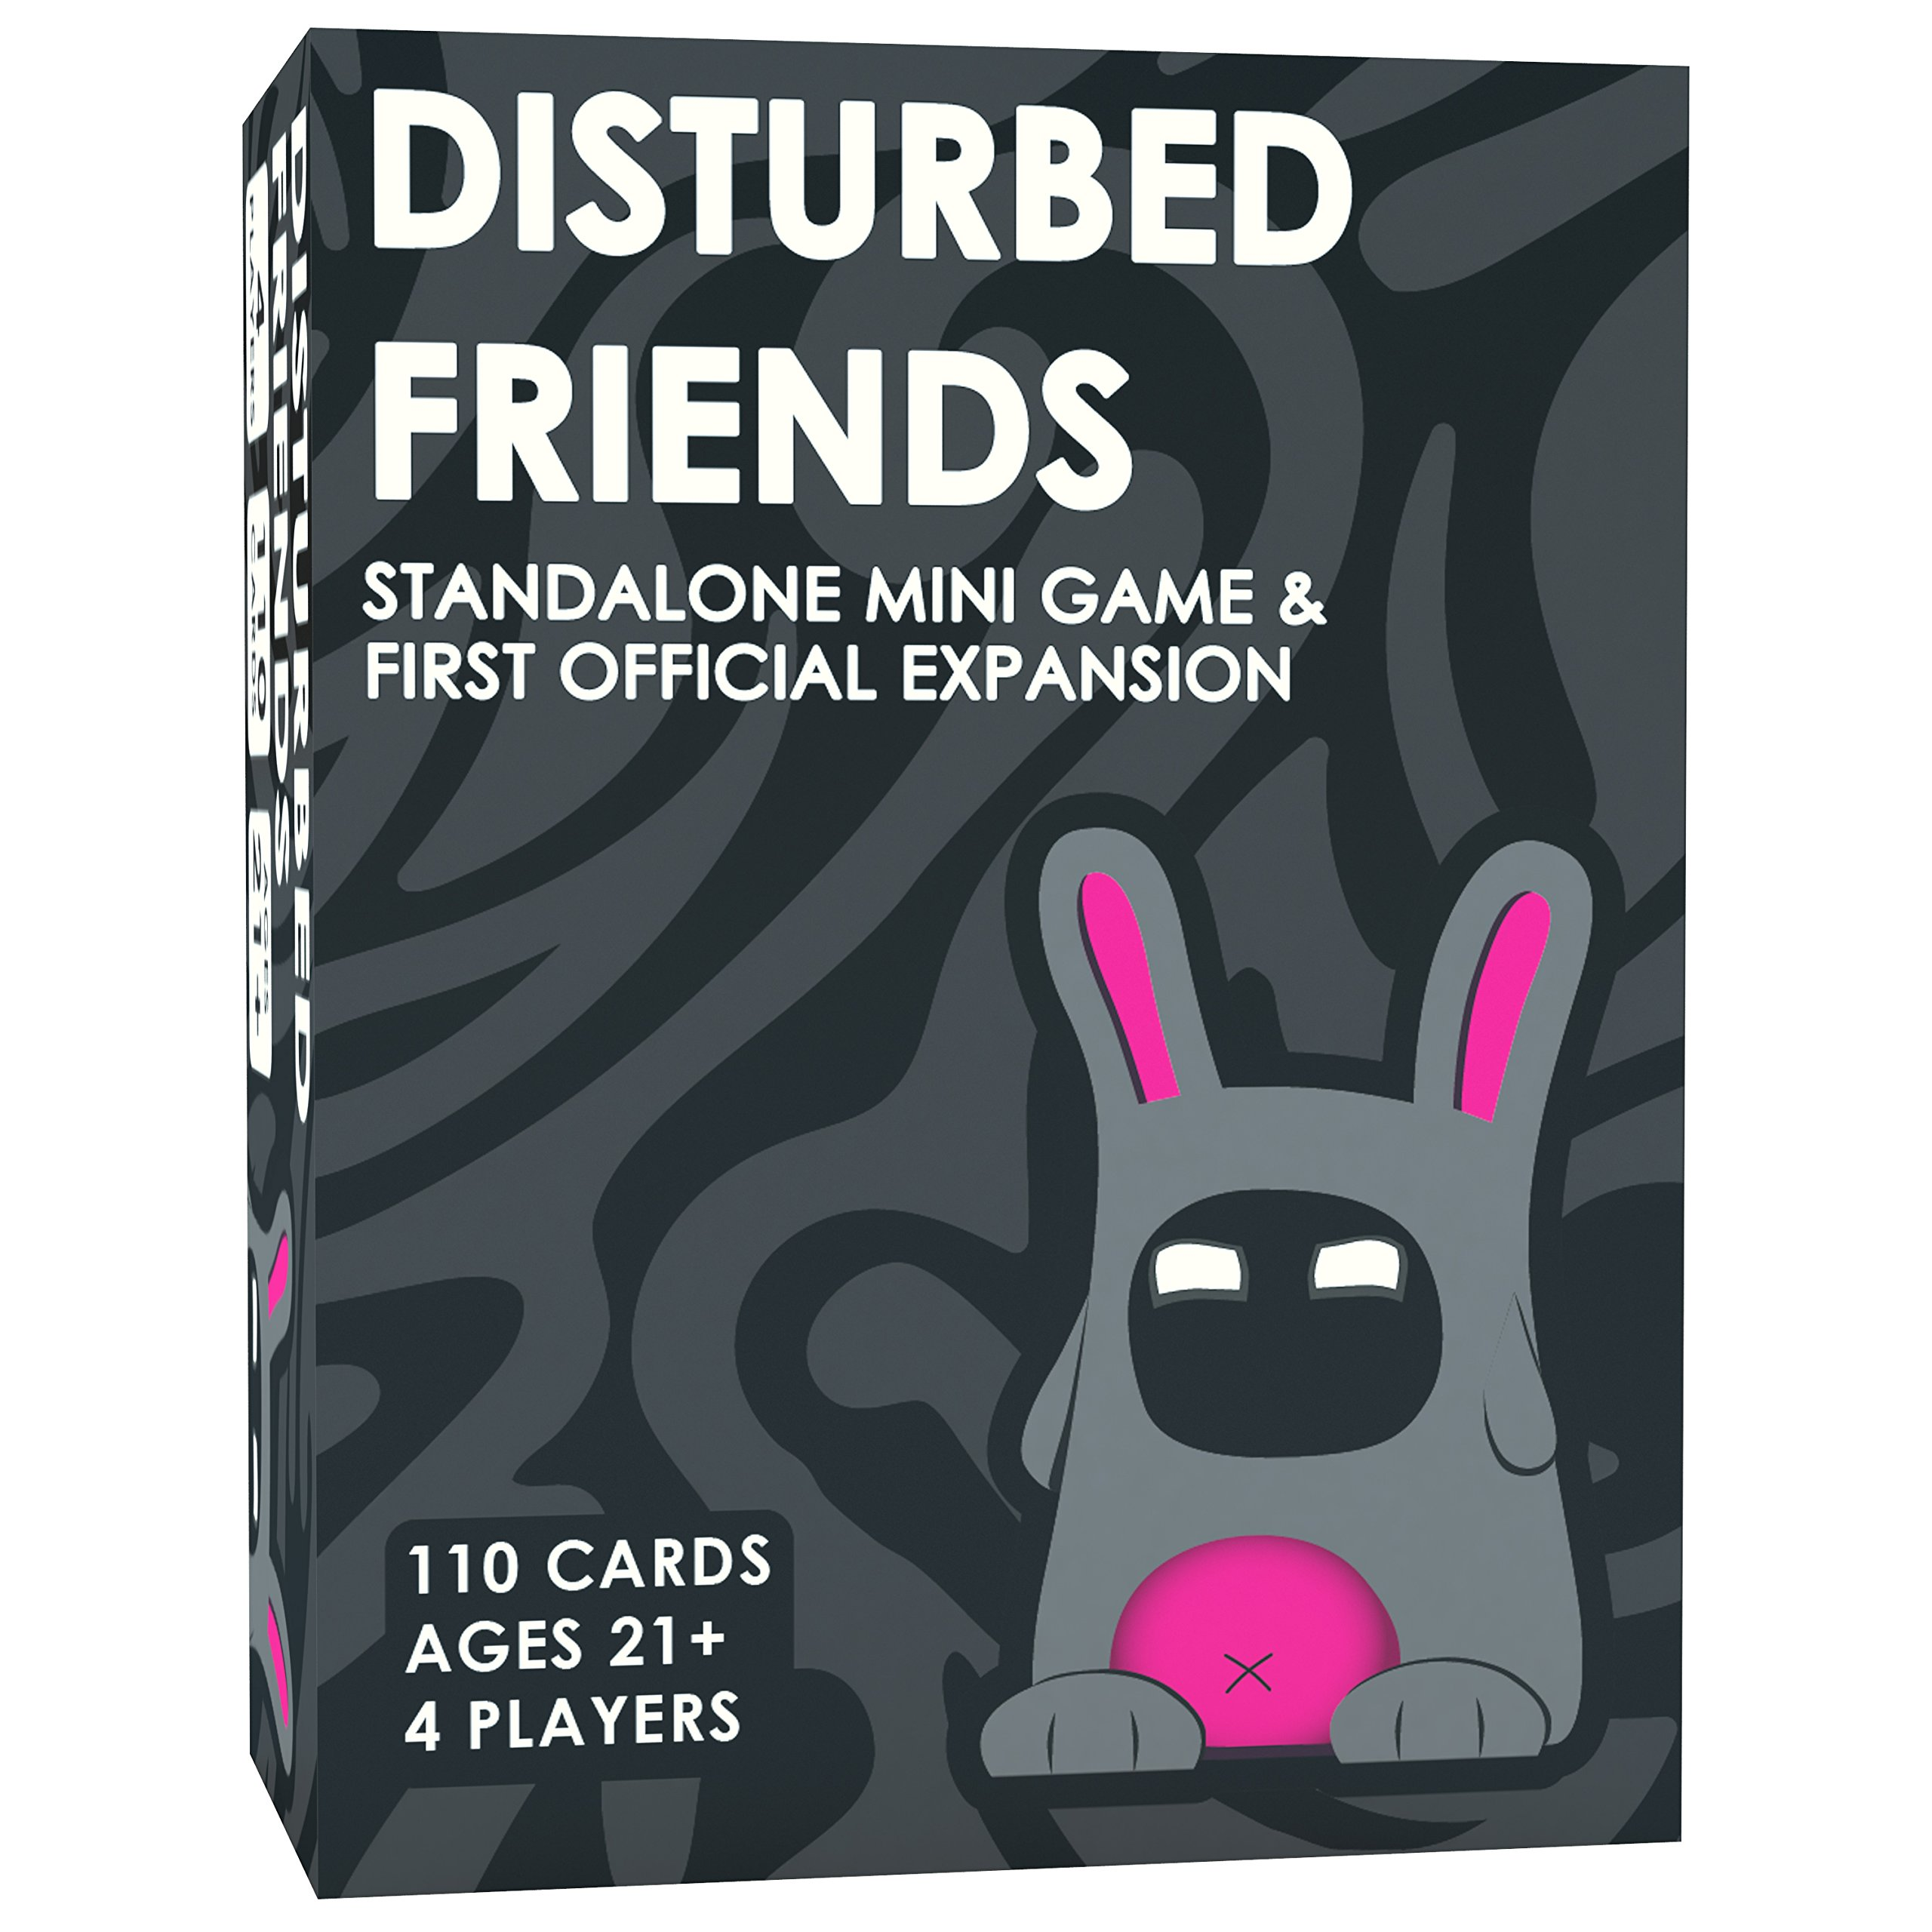 Disturbed Friends - First Expansion / Mini Game (All New Cards!) by Friendly Rabbit